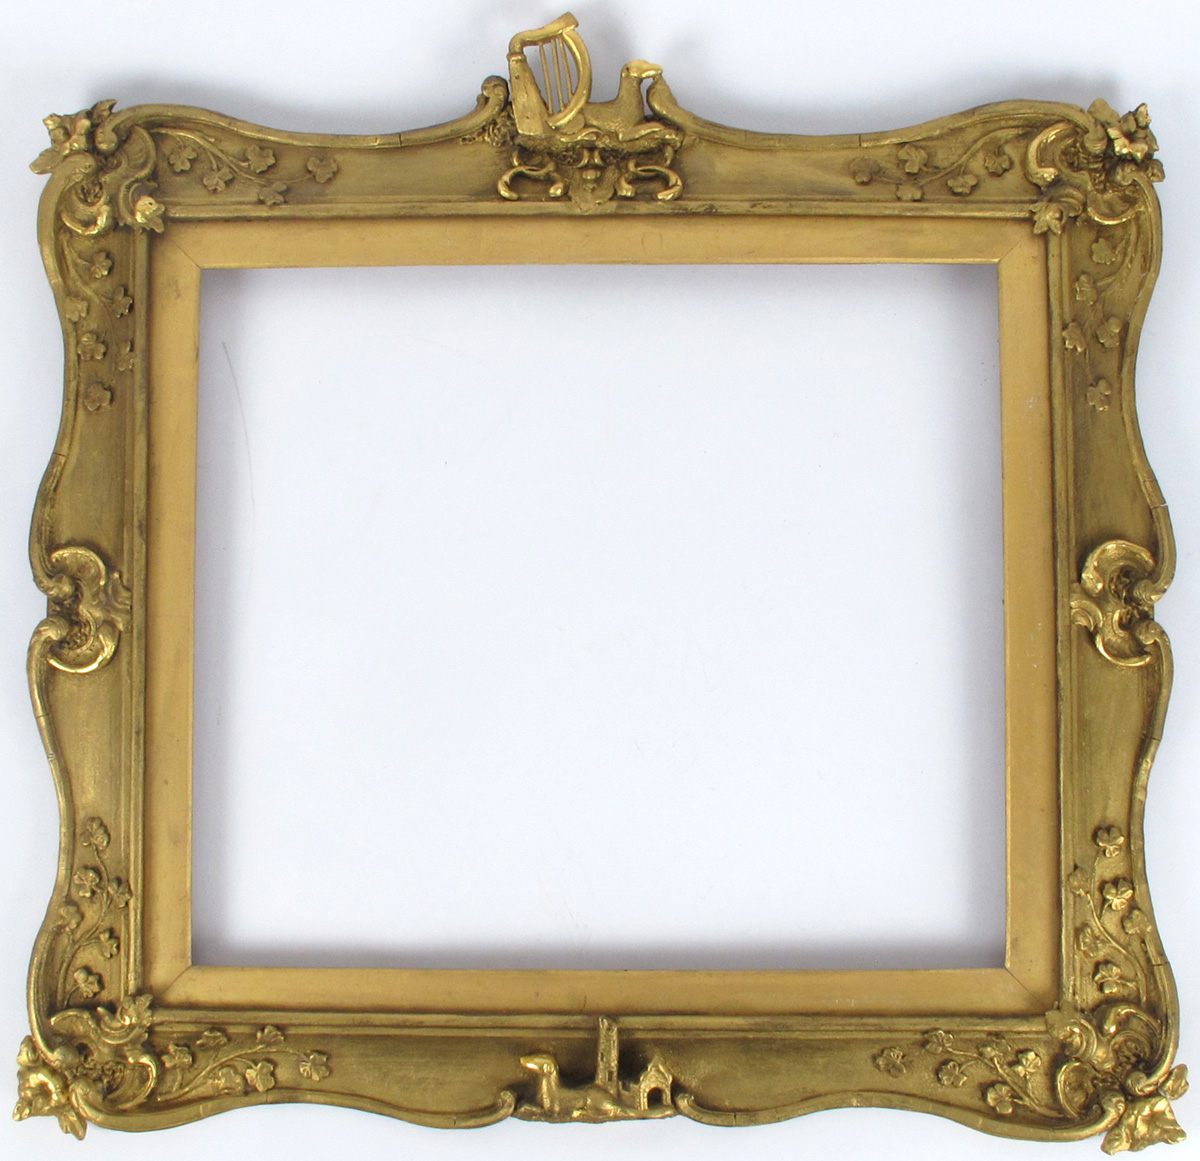 19th century Irish picture frame. at Whyte\'s Auctions | Whyte\'s ...